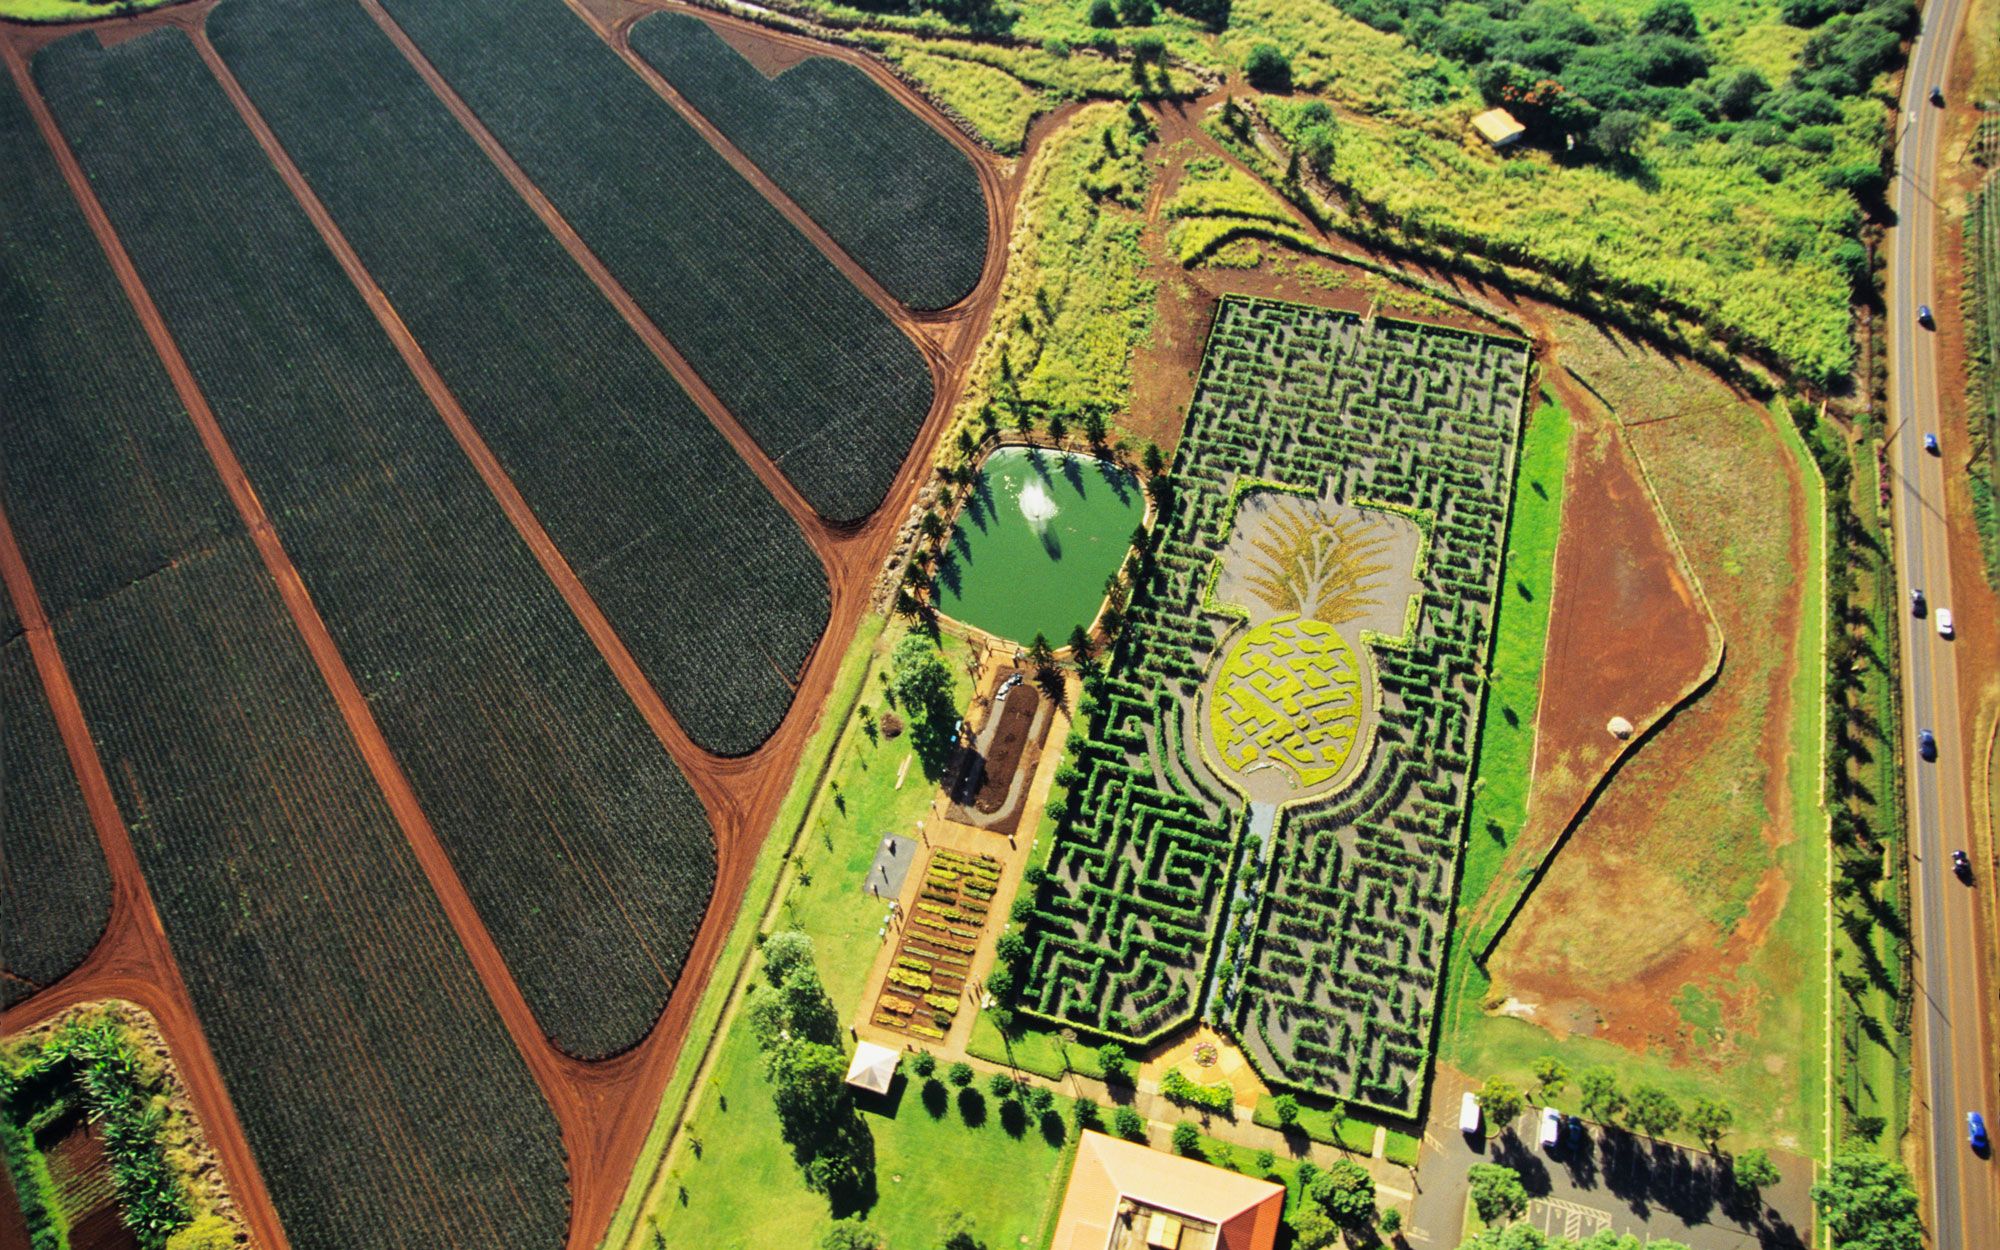 Weirdest Roadside Attractions: Hawaii: World's Longest Plant Maze